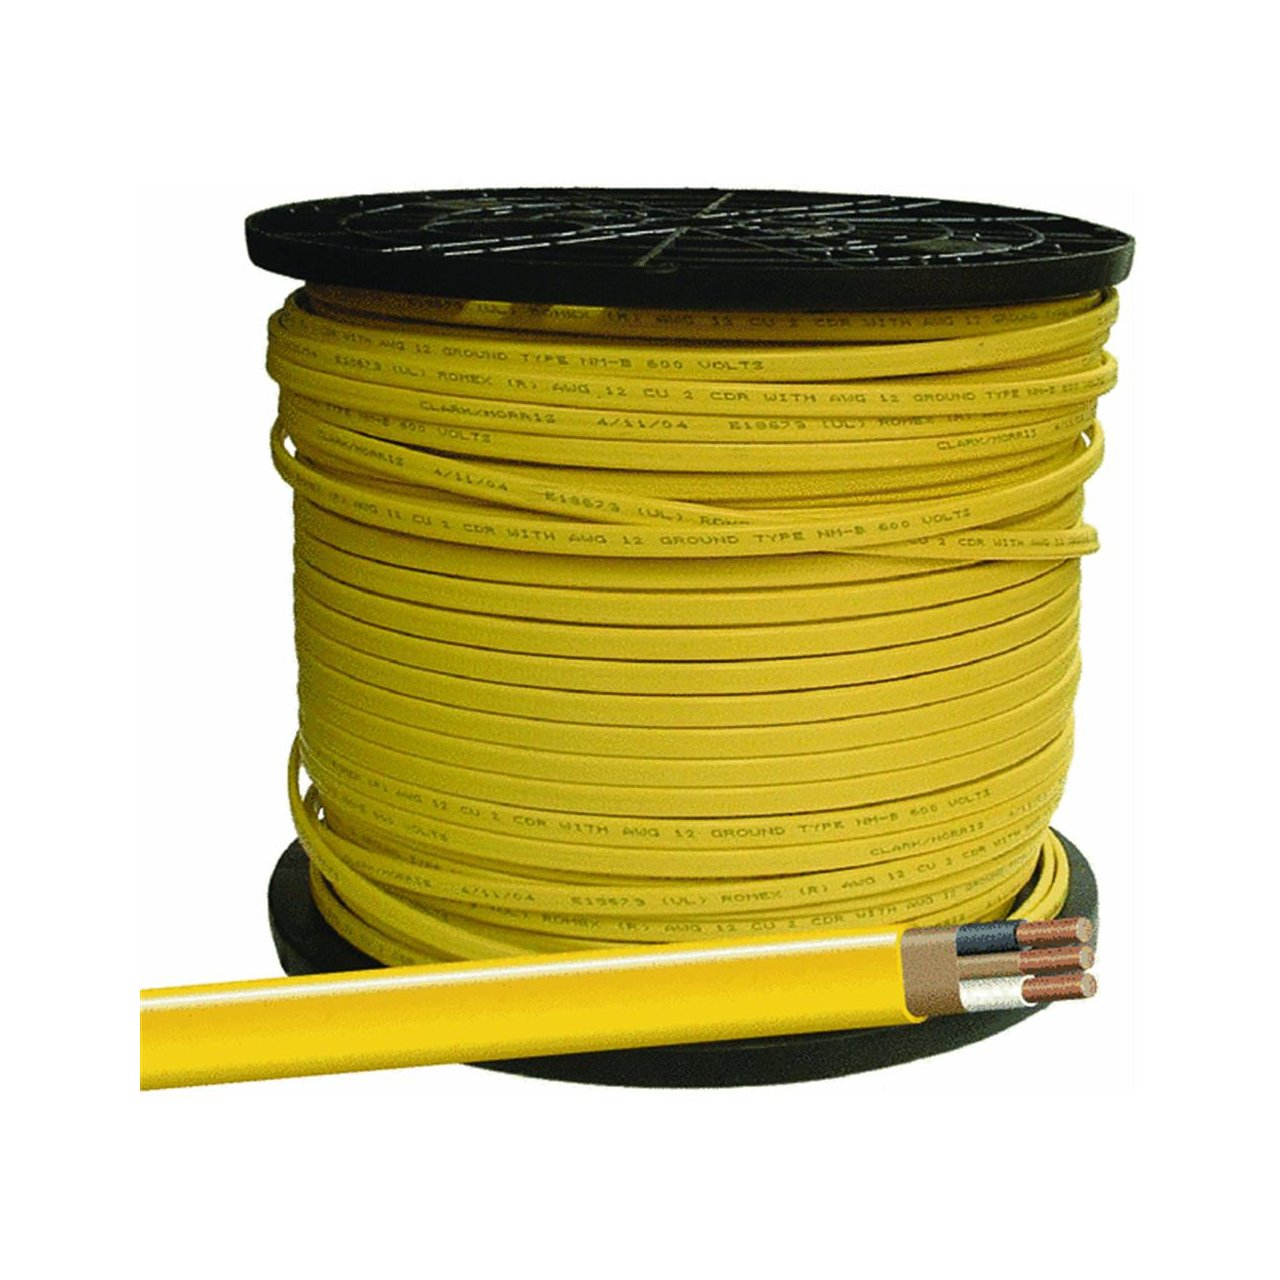 1000 Ft Electrical Wire Spool Center Mercury Prints Page 1 Iboats Boating Forums 522854 Southwire Building 12 Ga 2 Conductor 20 Amp 600 V 90 Deg C Rh Amazon Com Carts Stands